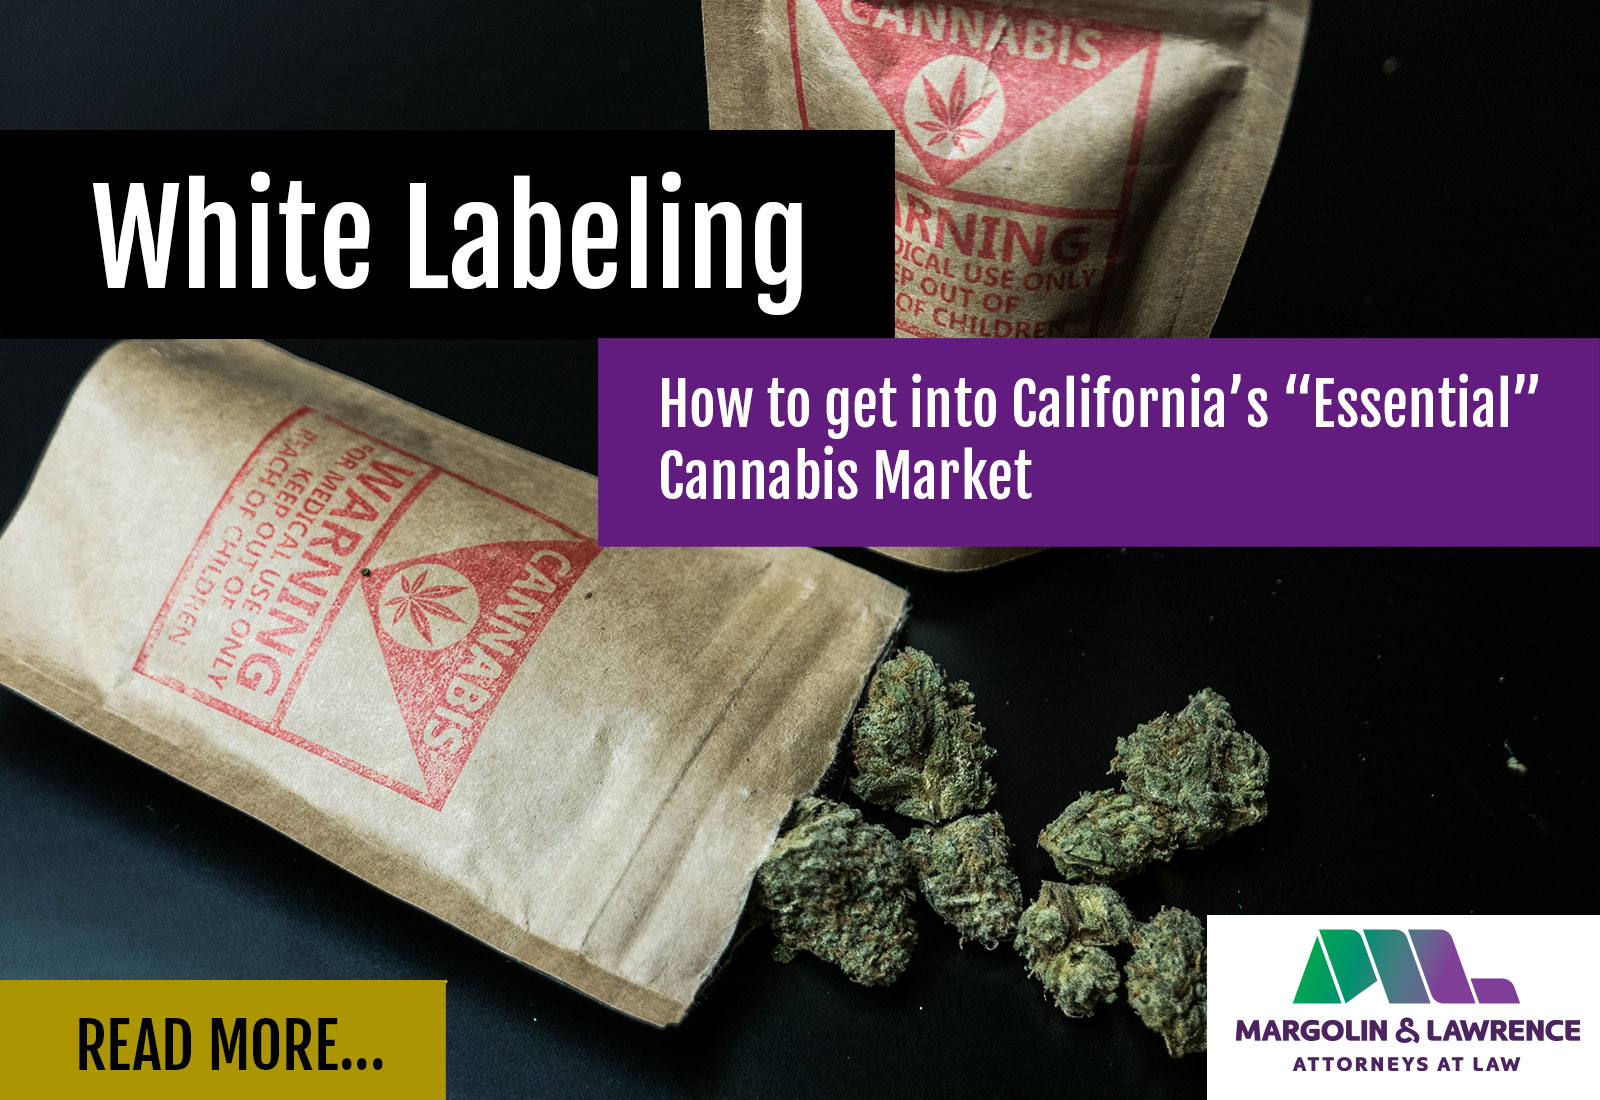 White Labeling: How to get into California's